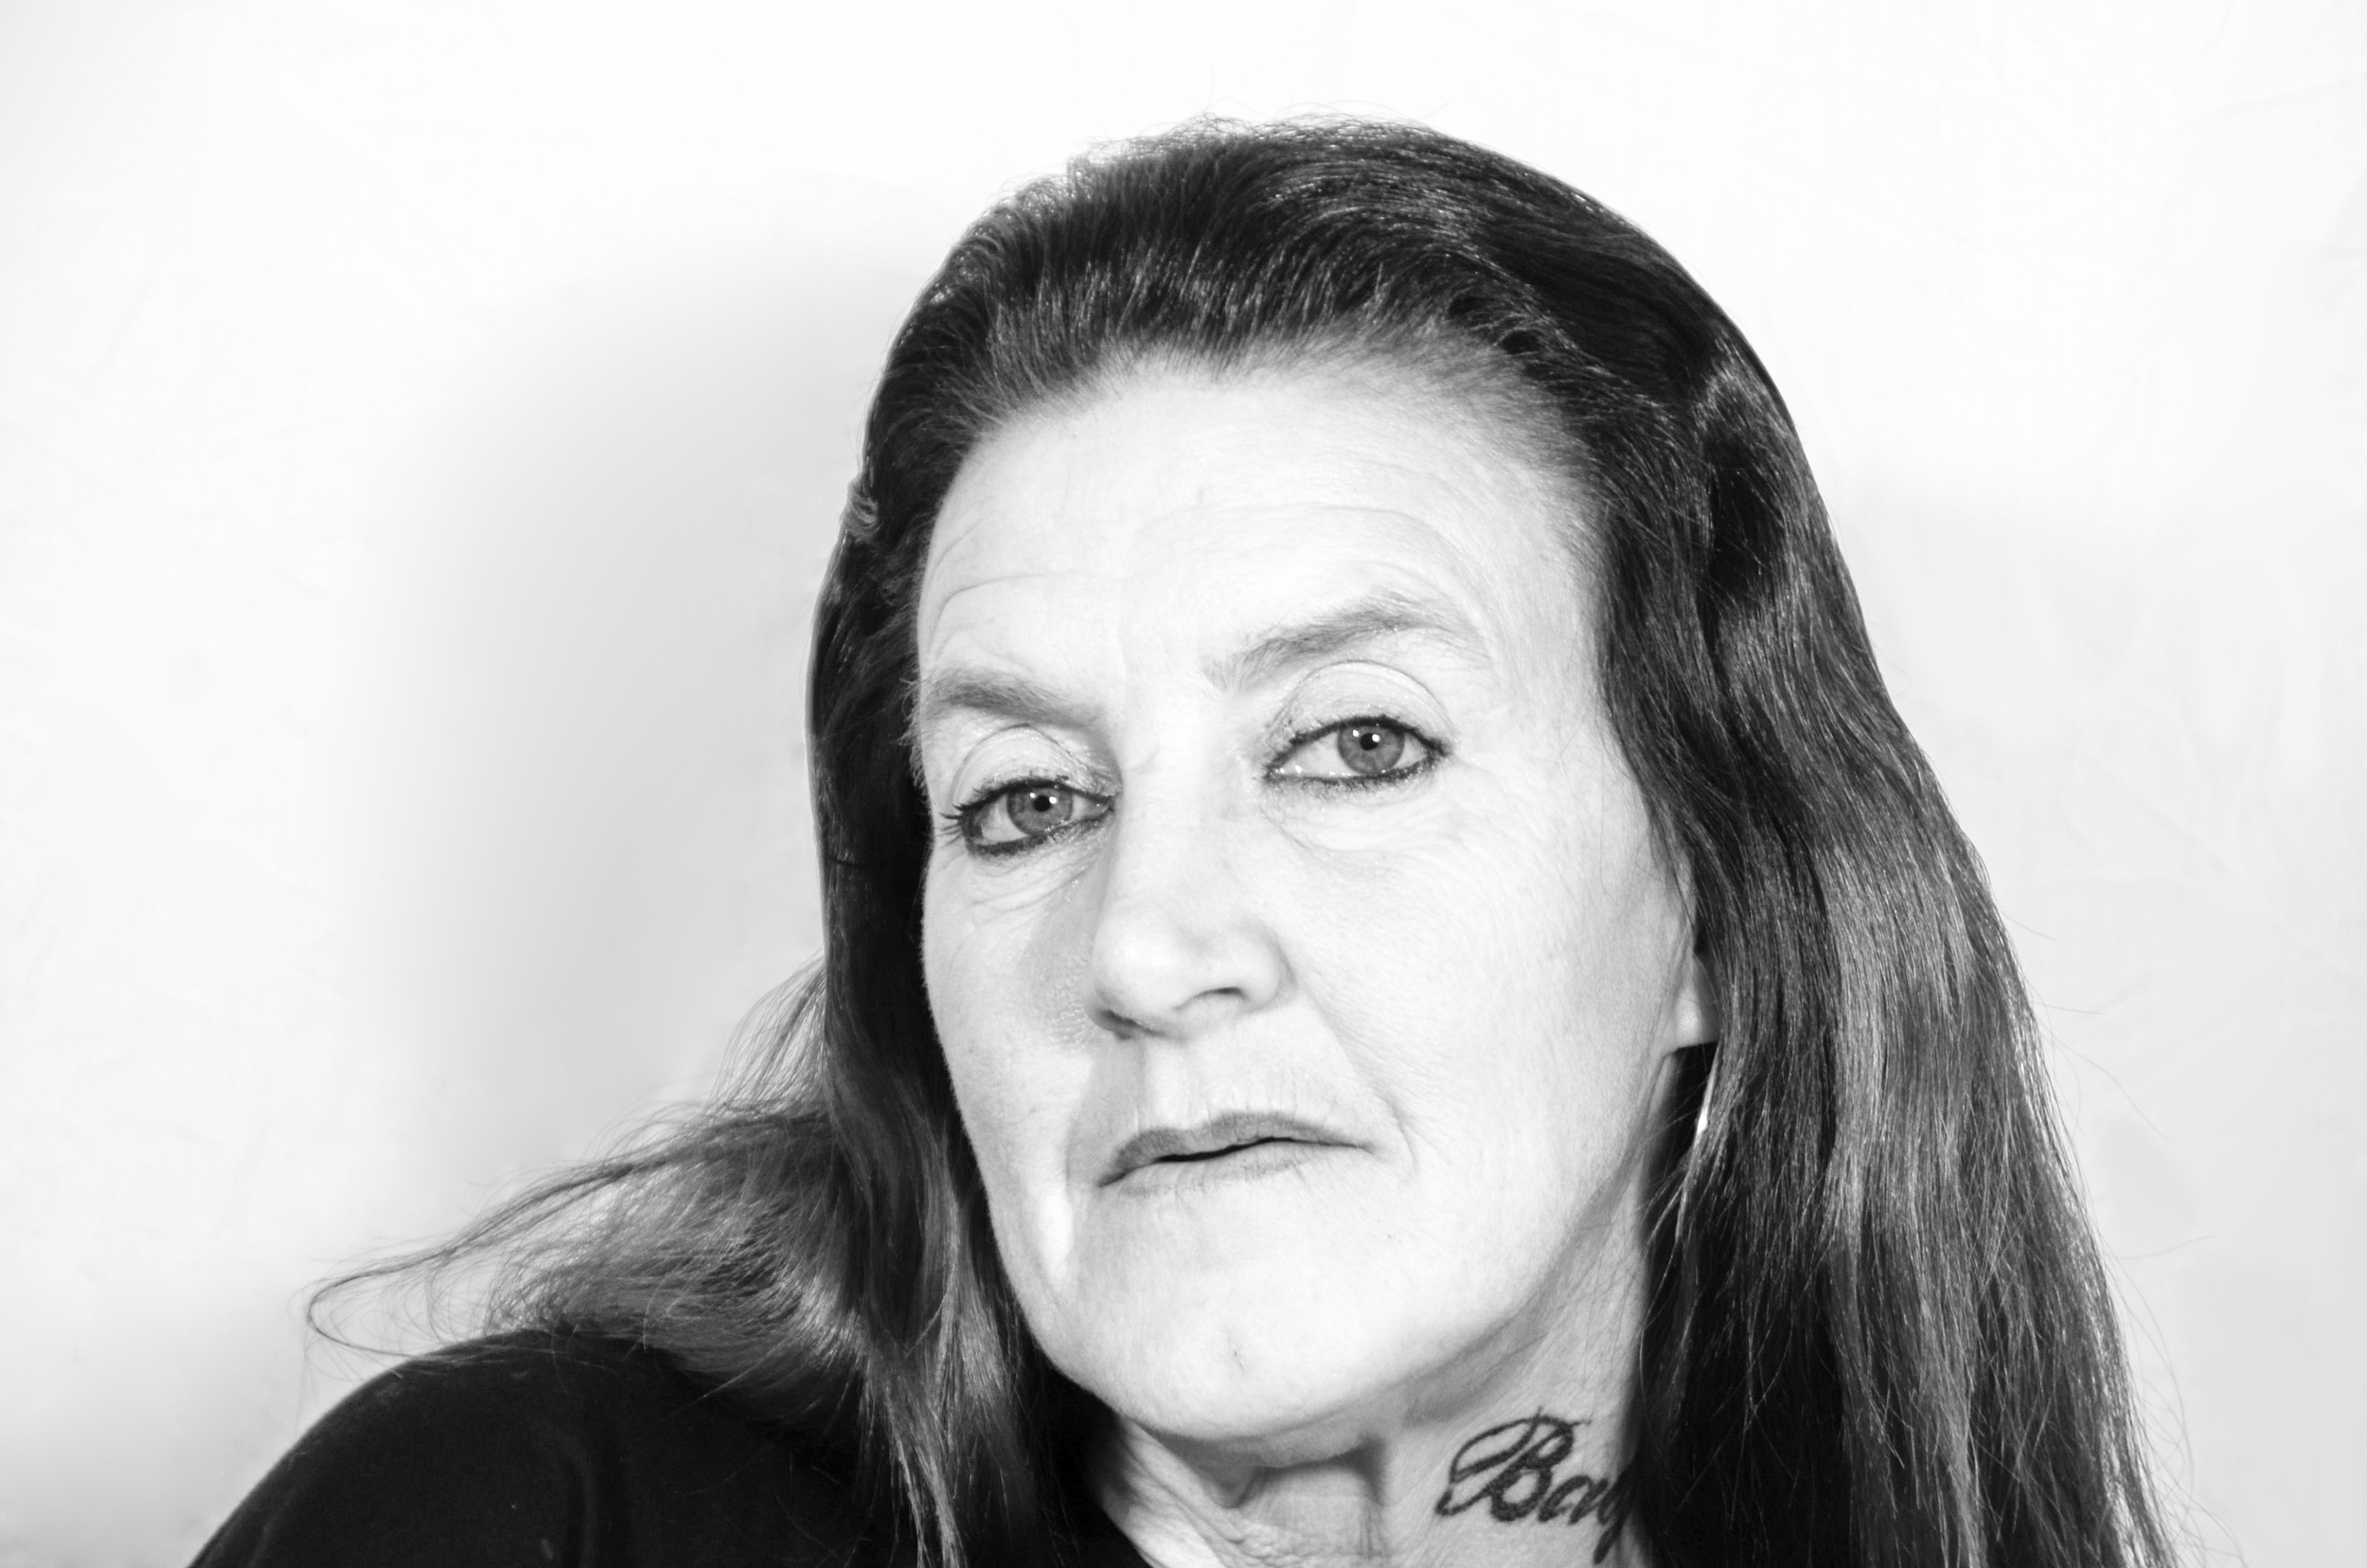 Monica Rojas, 49. This portrait was part of a Modesto Bee series on mental illness and access to care.